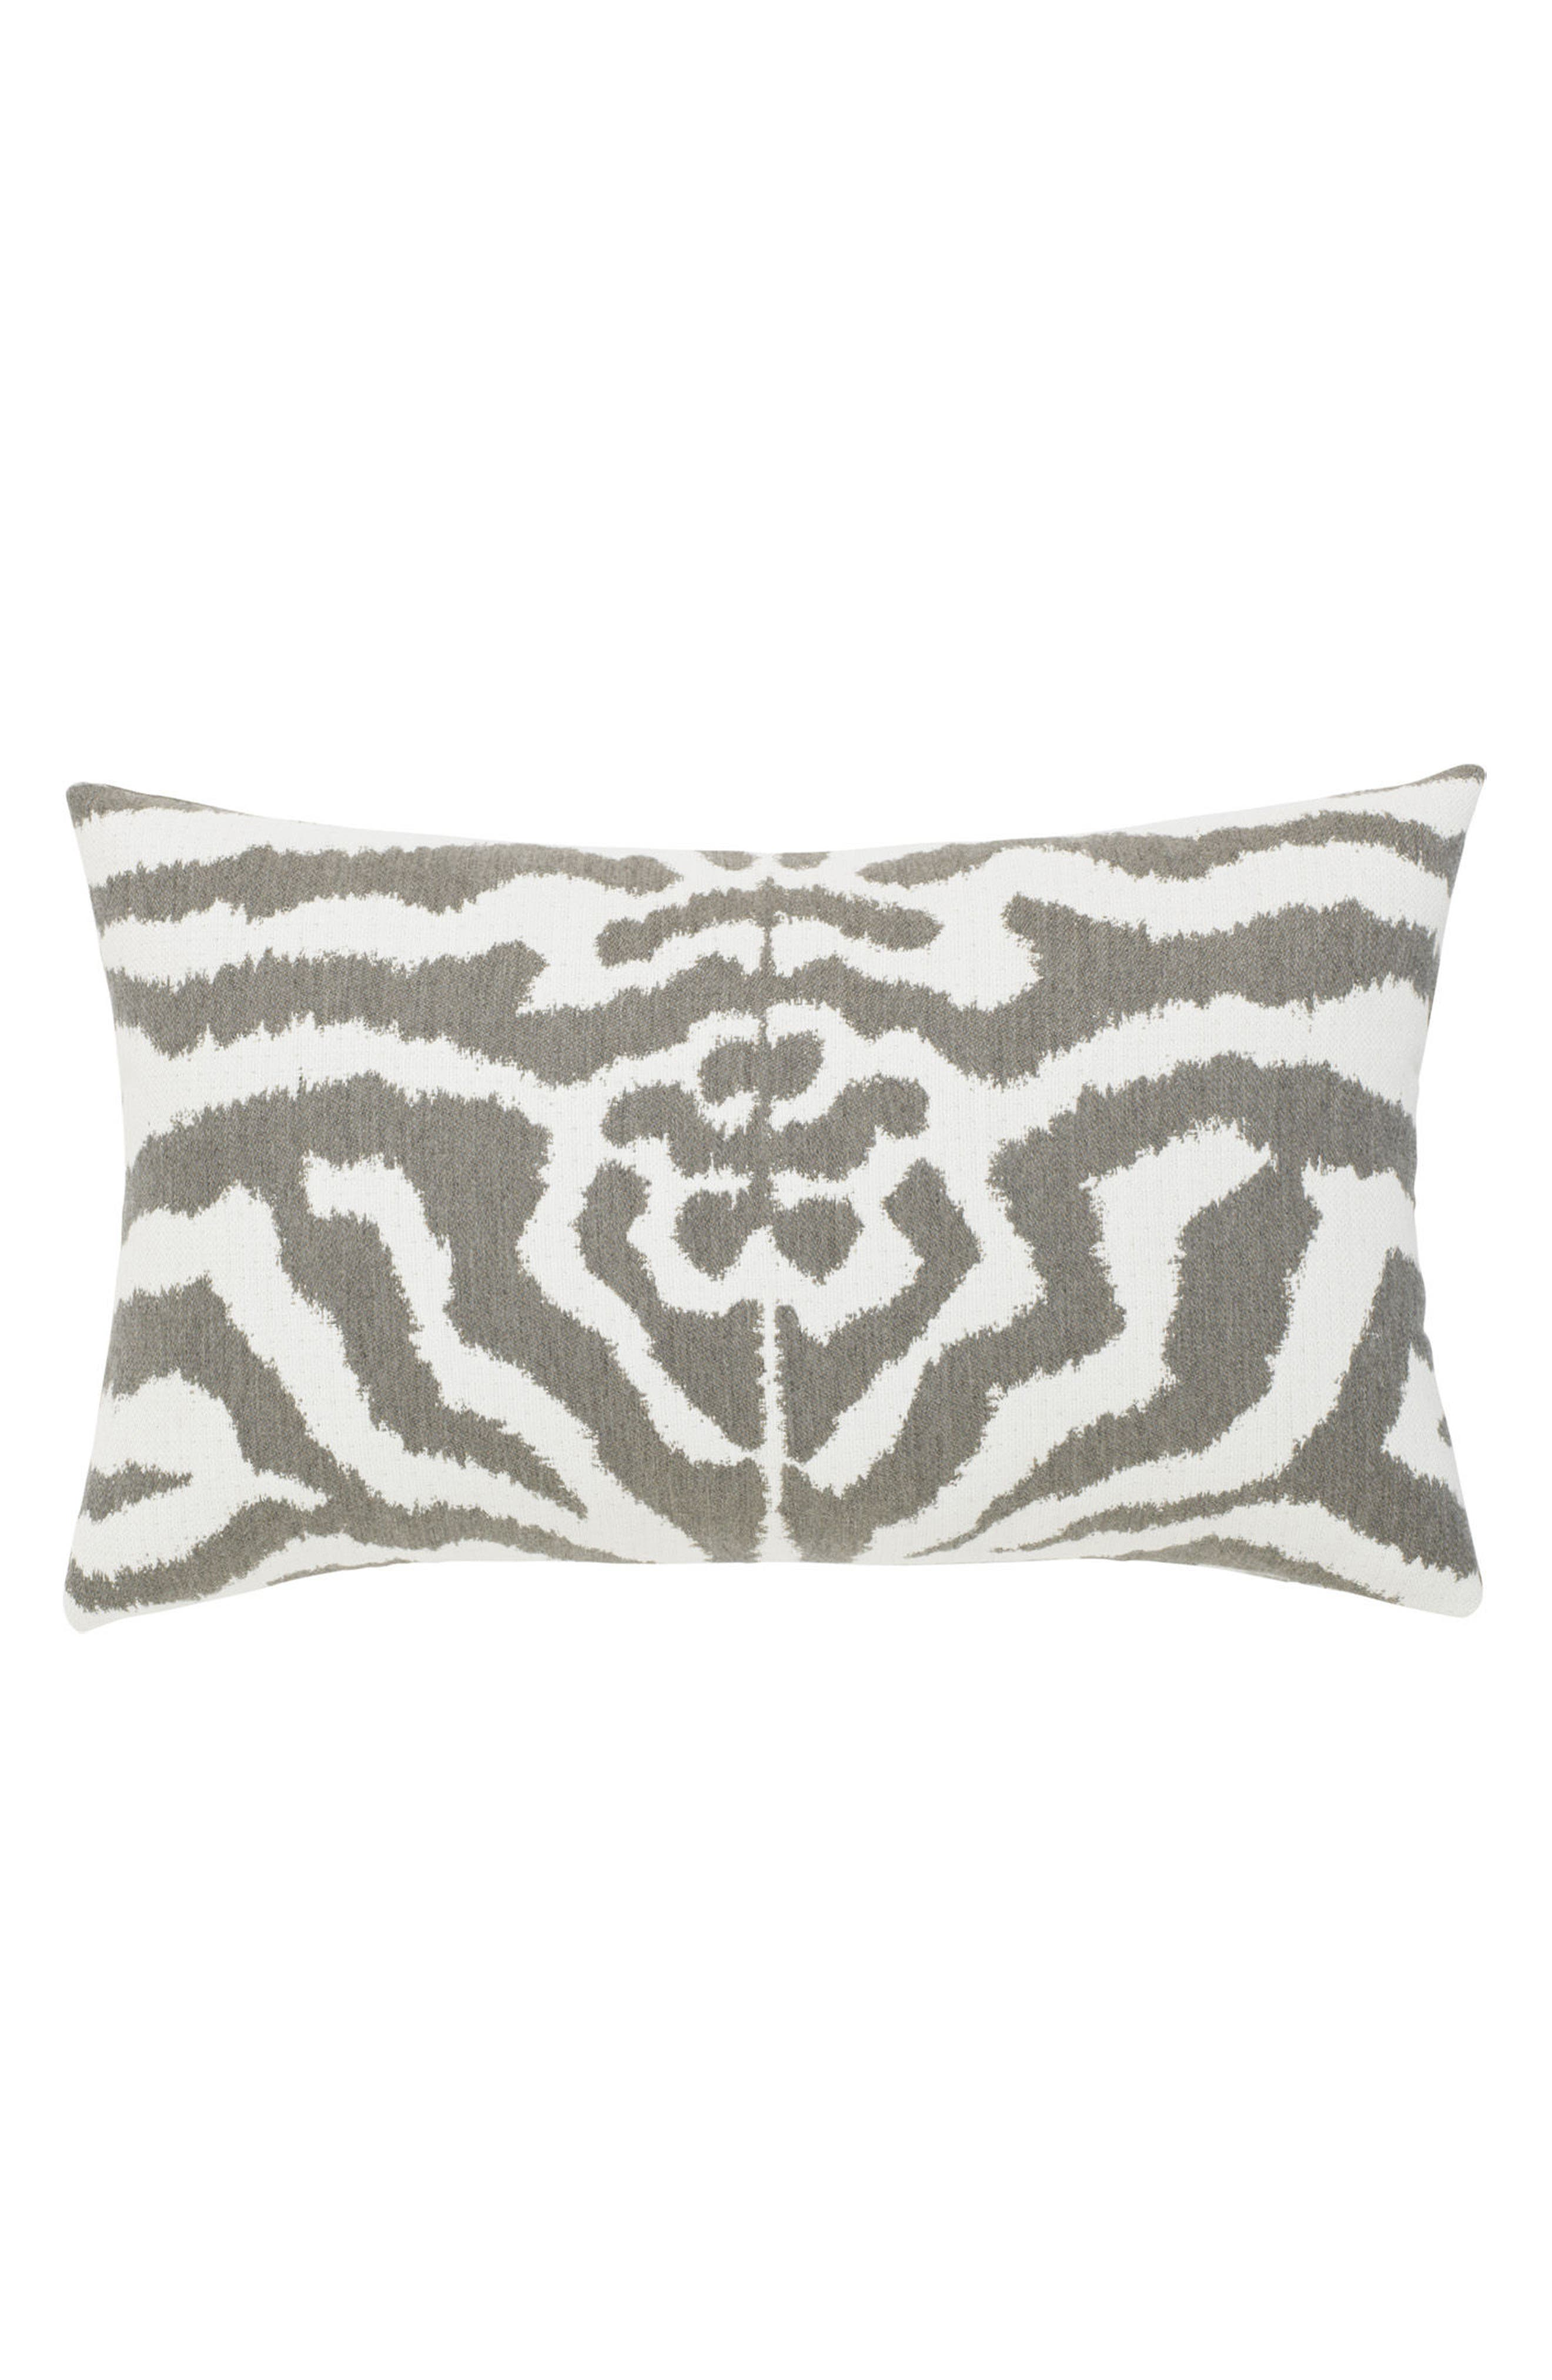 Zebra Gray Indoor/Outdoor Accent Pillow,                             Alternate thumbnail 2, color,                             GRAY WHITE